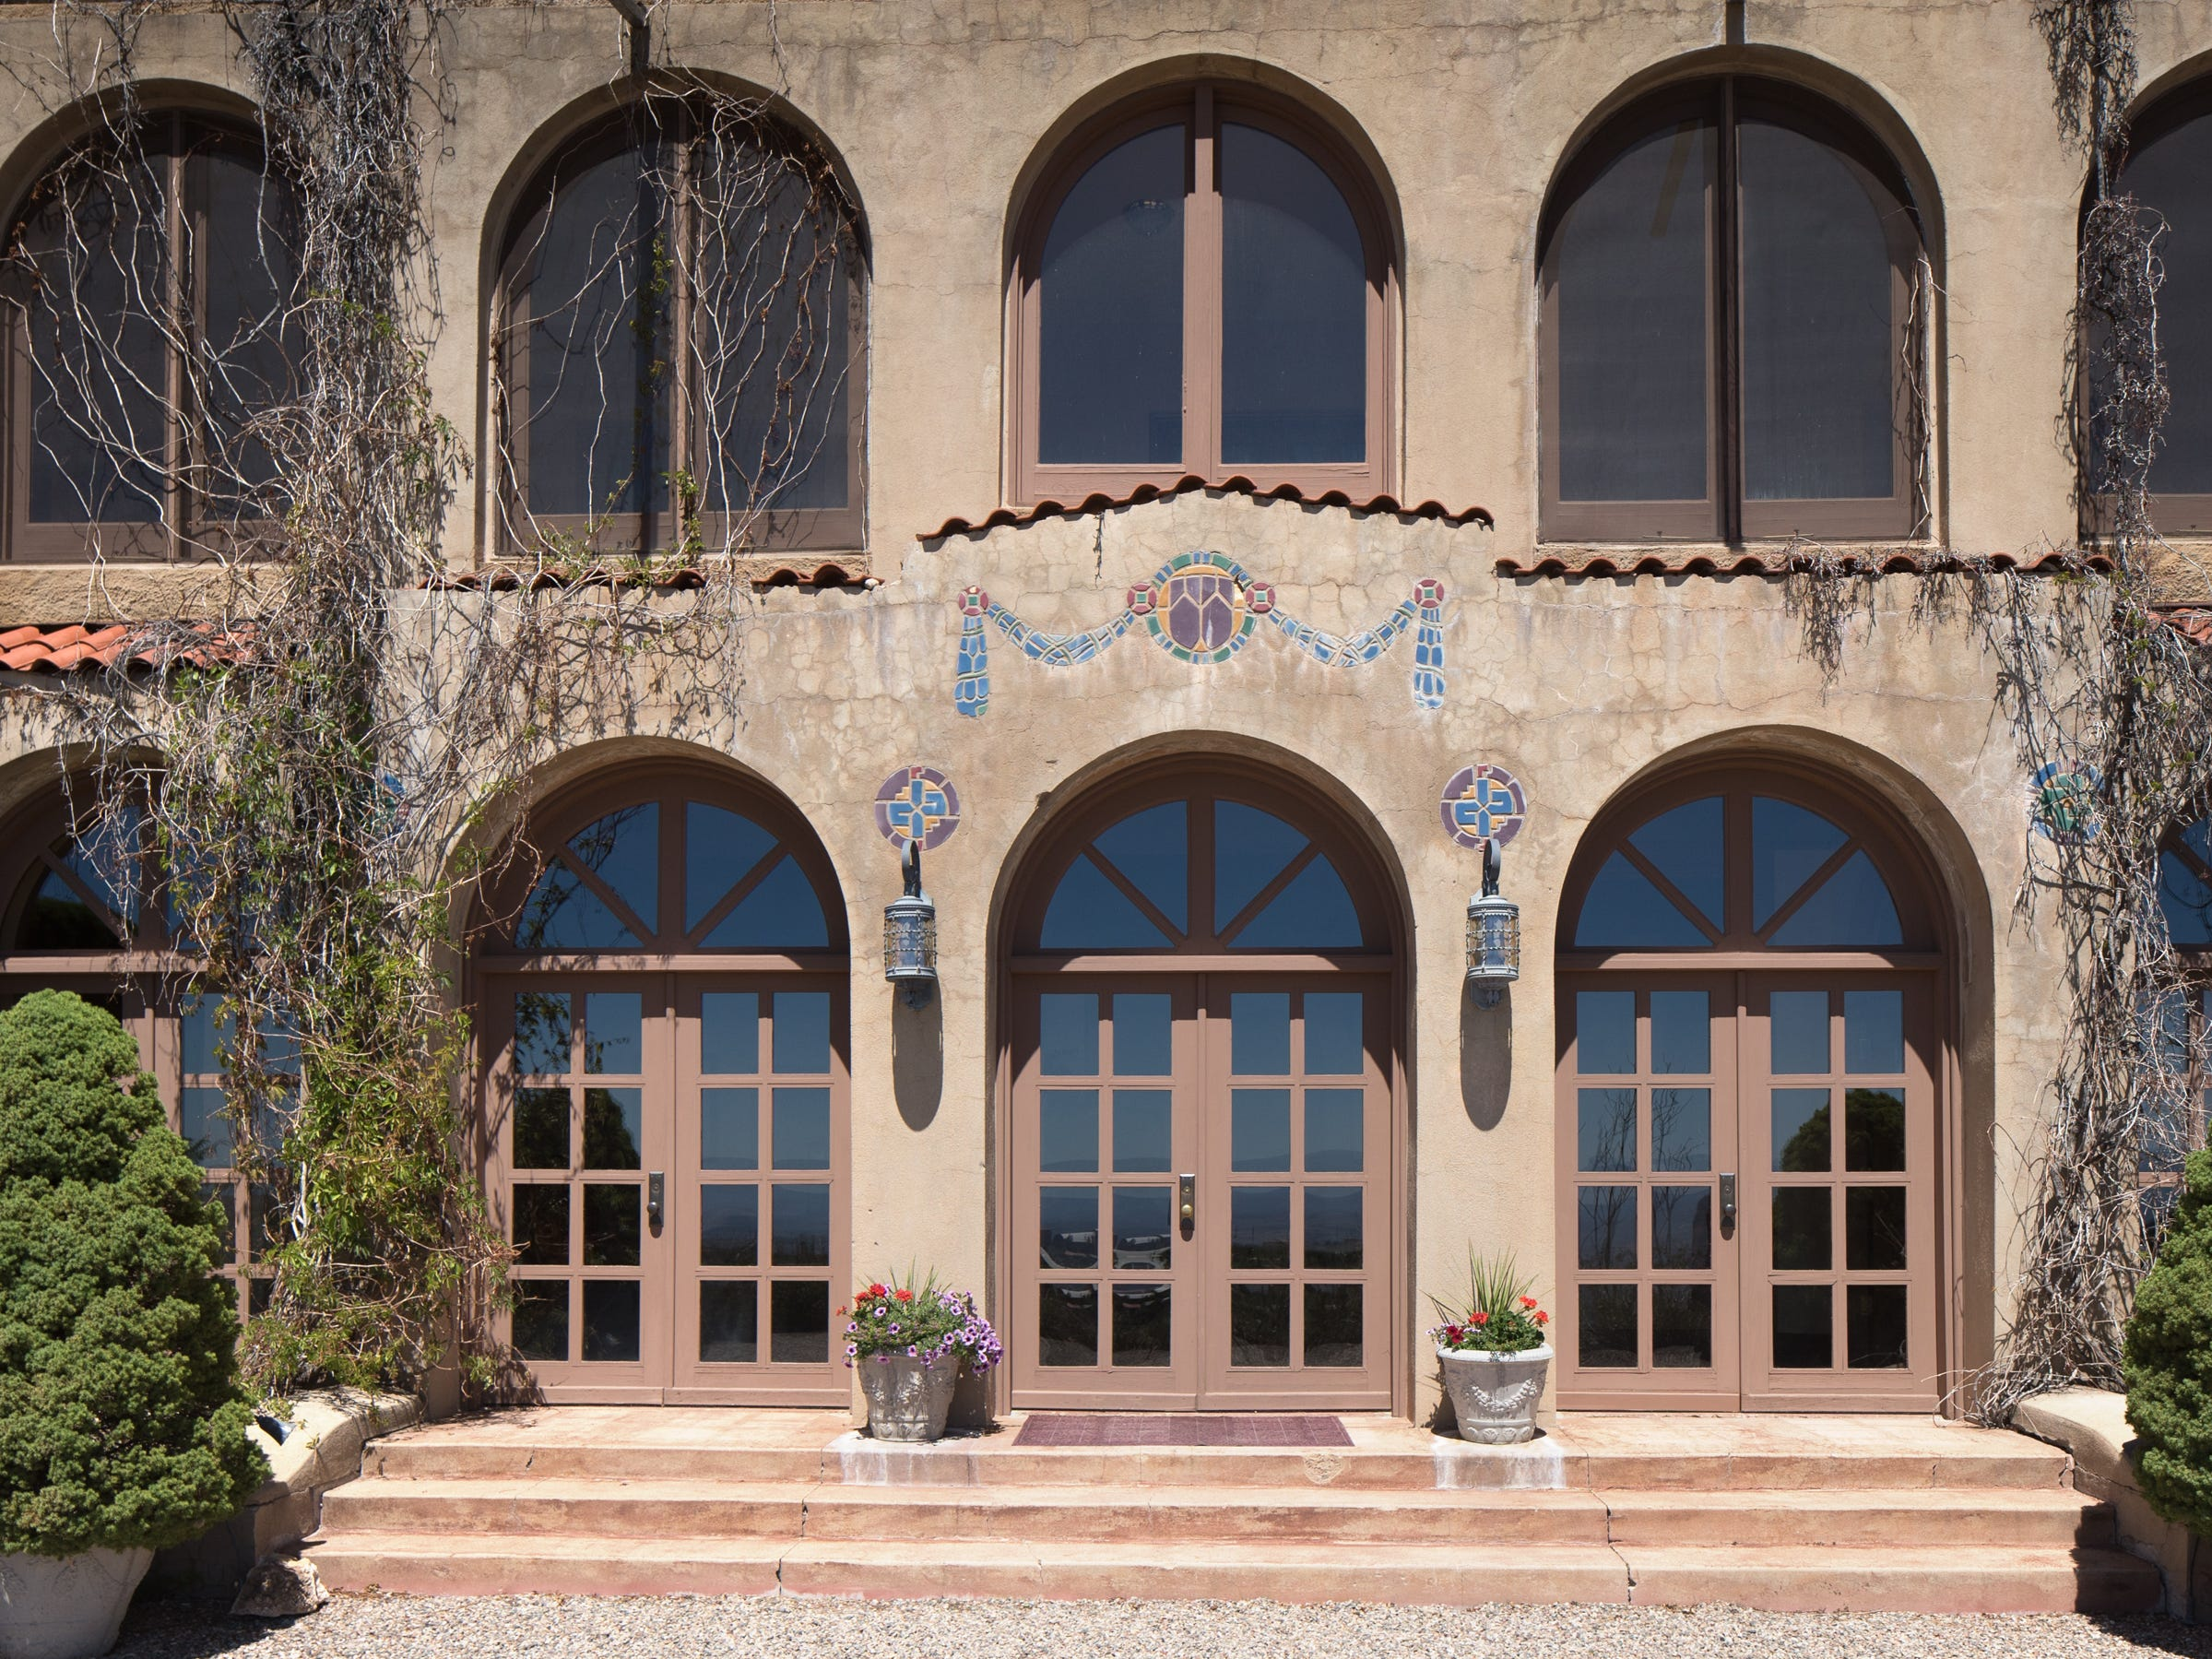 Beautiful tile work is seen at the 100-year-old former Little Daisy Hotel in Jerome, which was later turned into a single-family home and is now on the market.